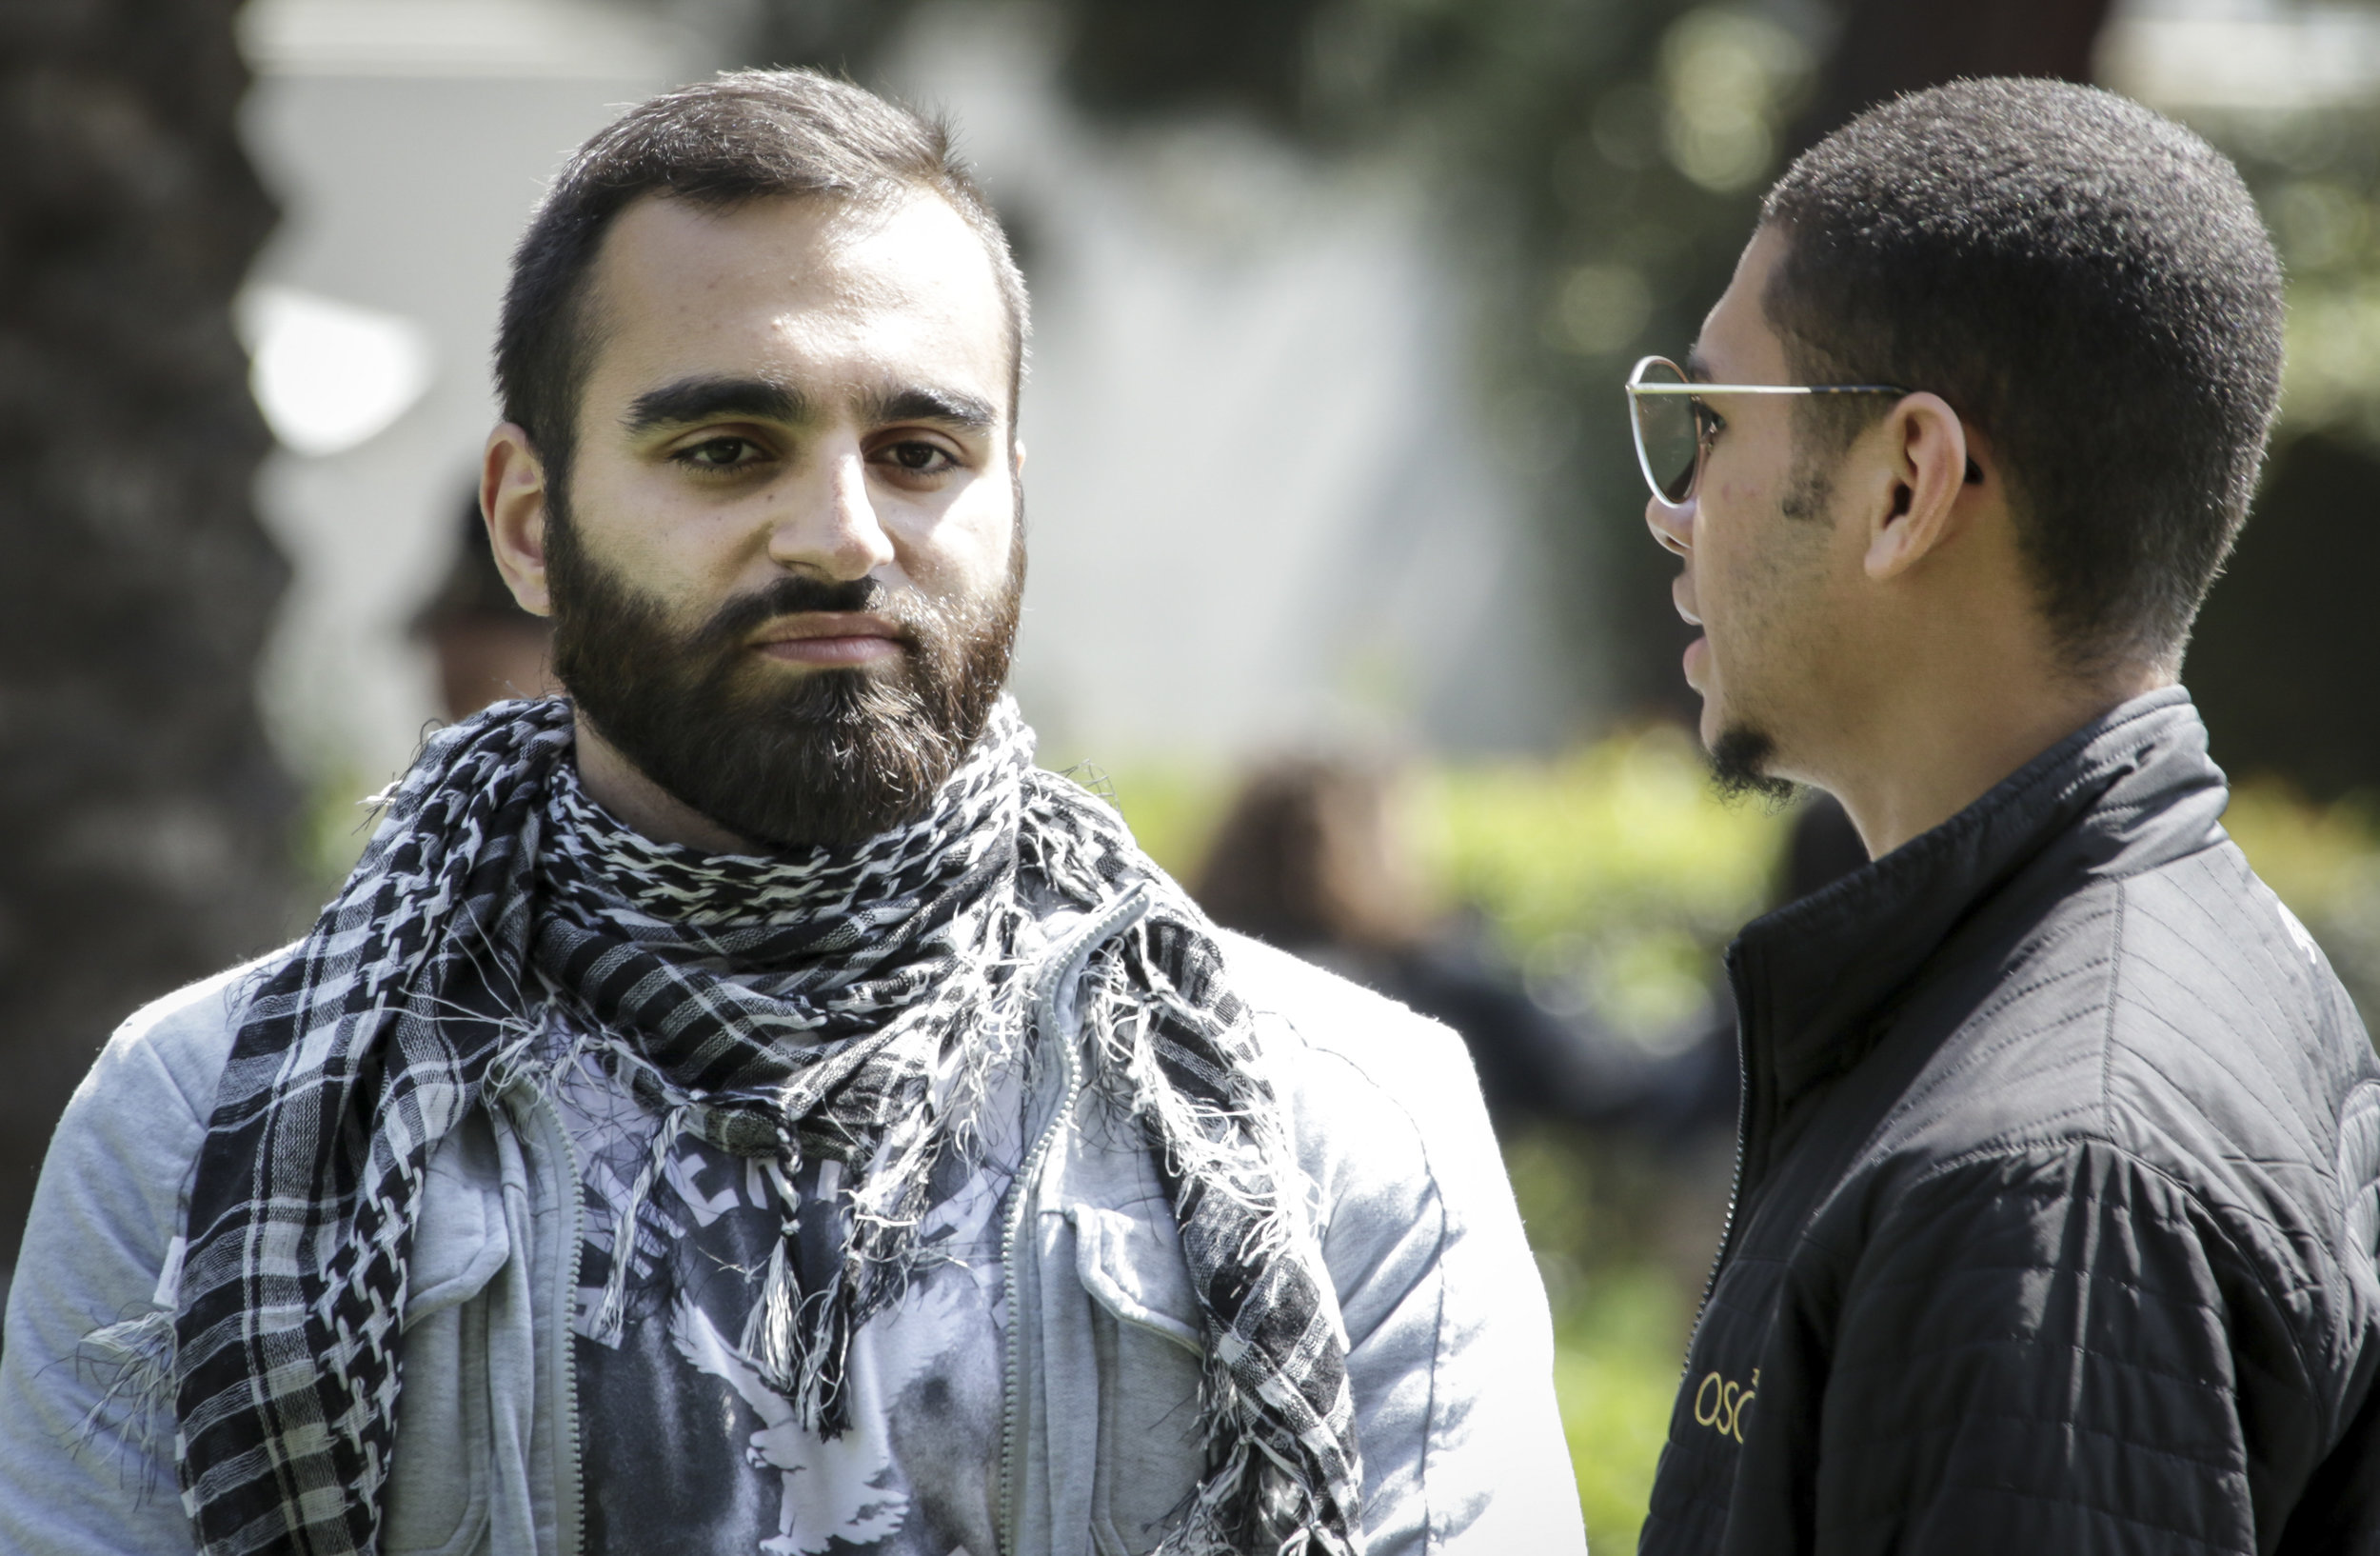 Santa Monica College Associated Students Candidate Hesham Jarmakani (Left) and Chase Matthews (Right) at the Associates Students election debate held at the quad of the main campus. Jarmakani is running for the position of the vice president. Chase Matthews is currently Student Trustee. Santa Monica, California, Tuesday April 3, 2018. (Ashutosh Bikram Singh/Corsair Photo)